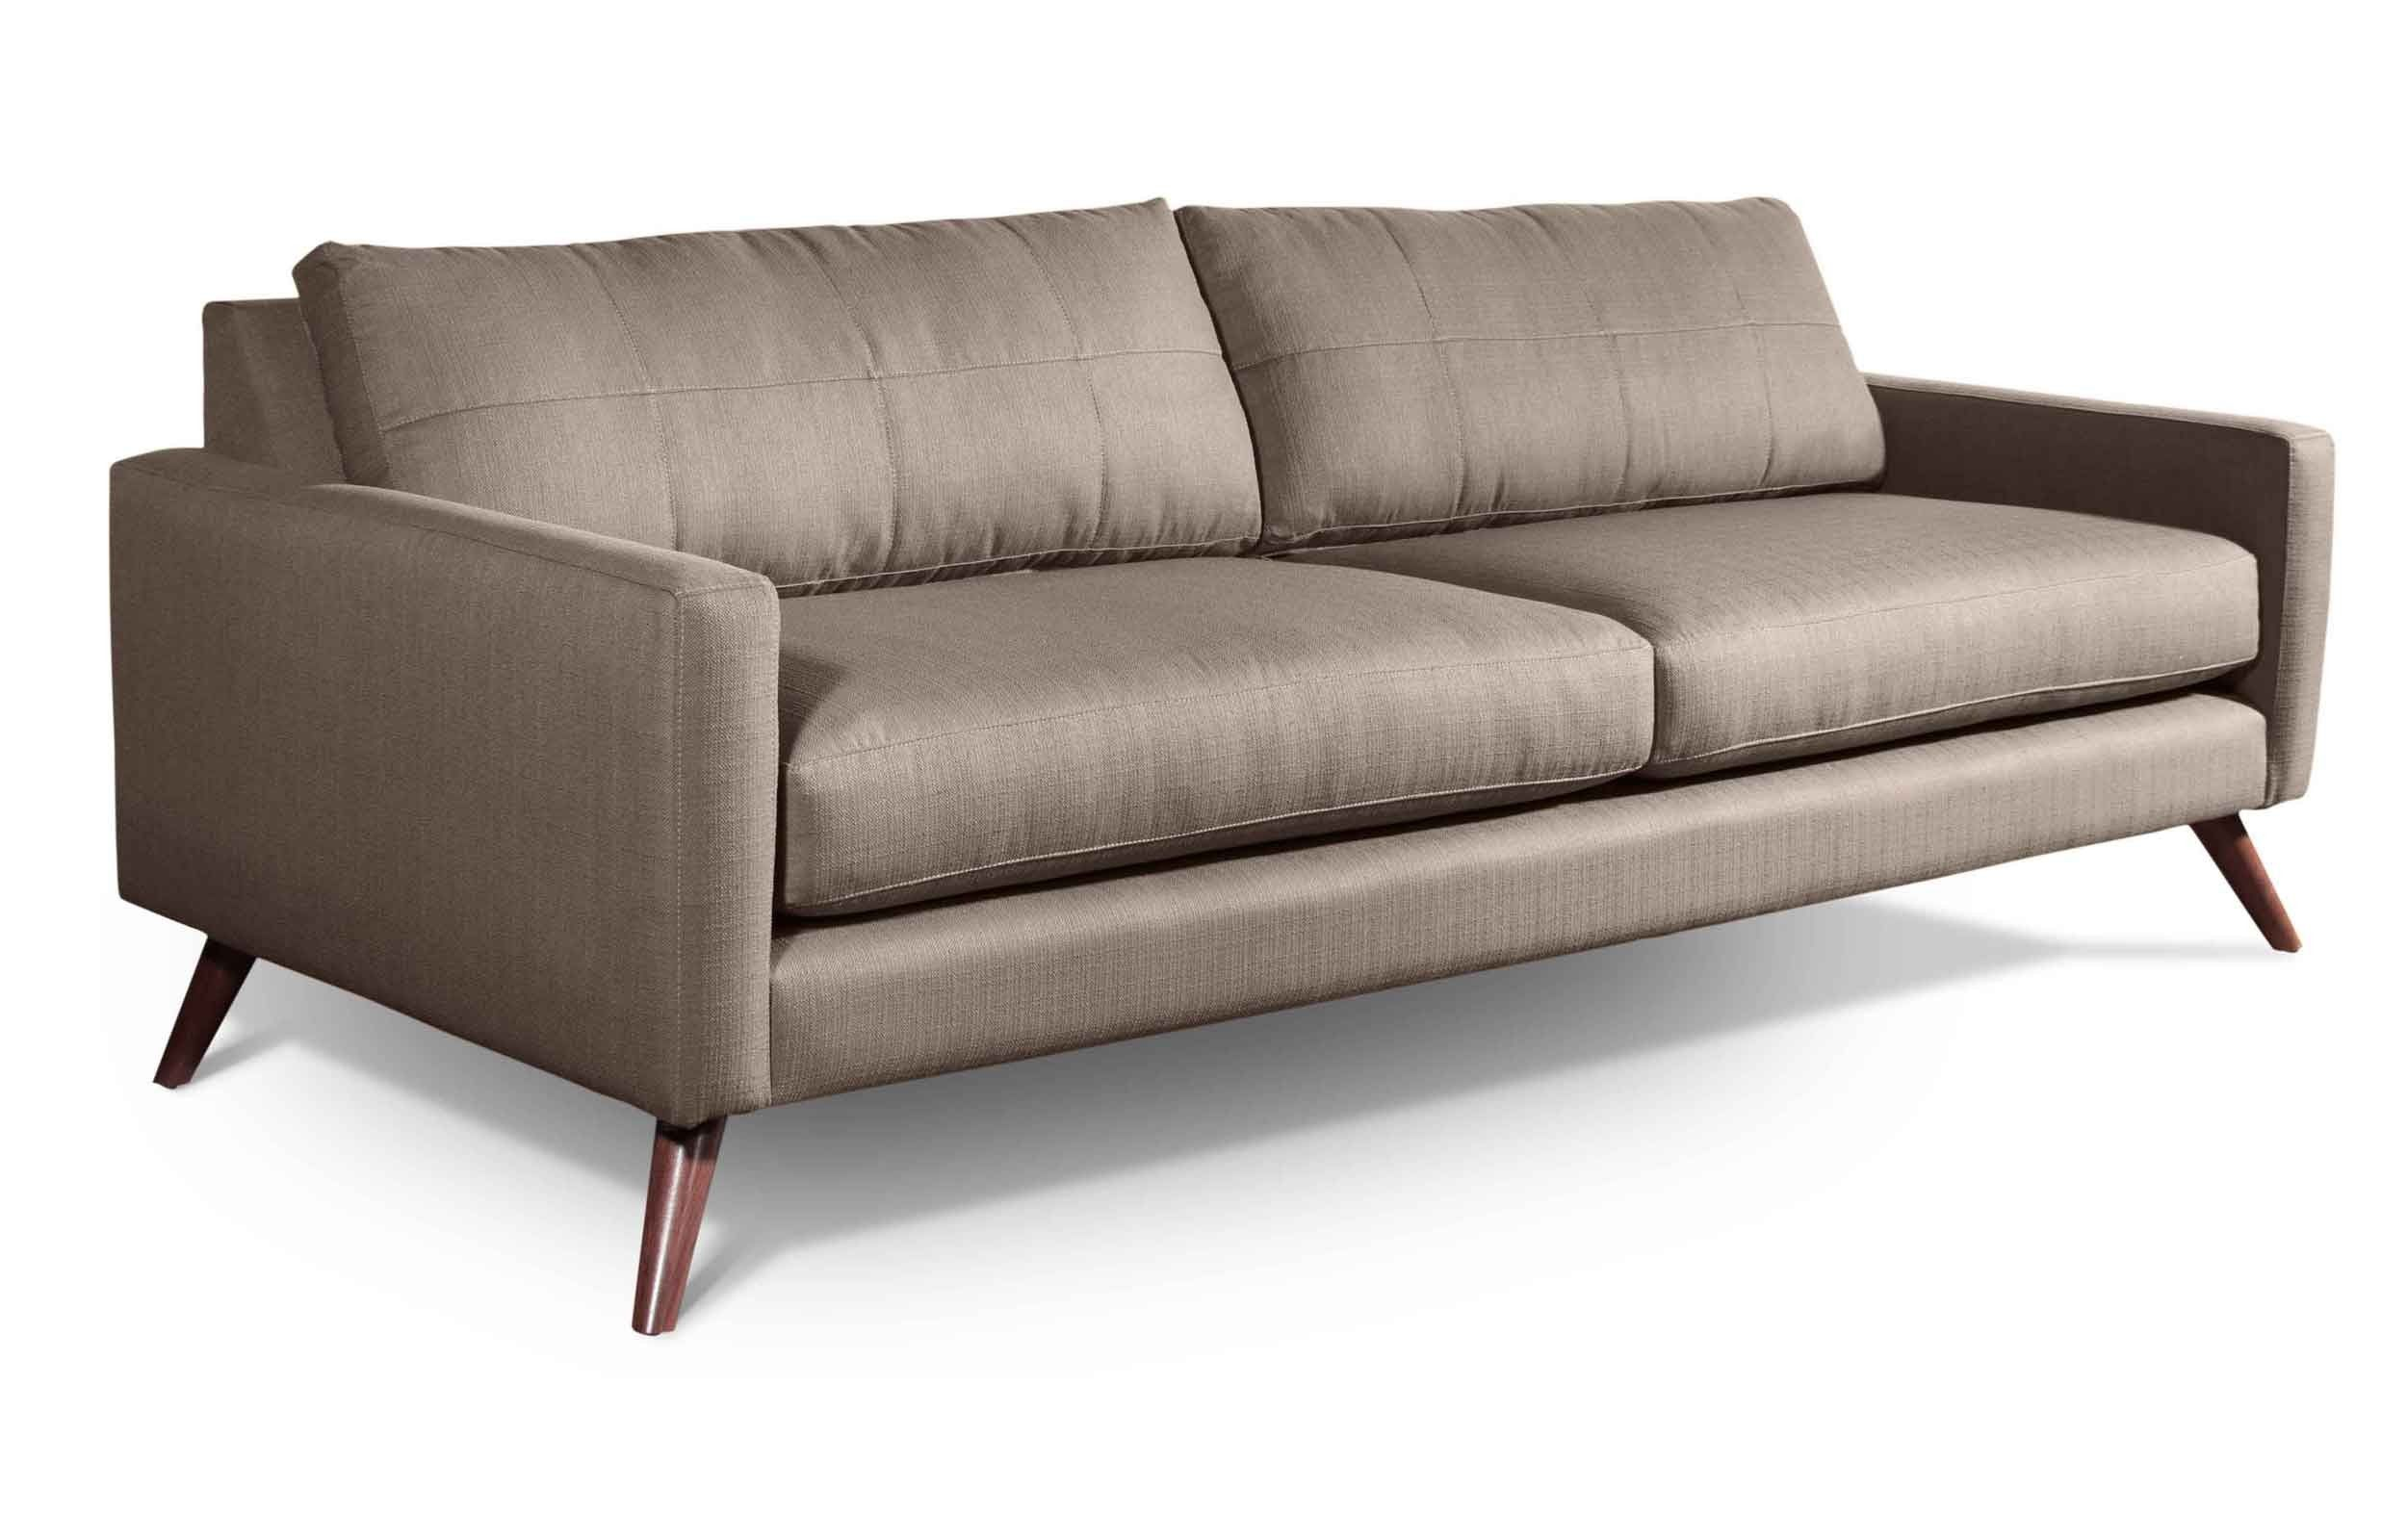 Dane 87 Standard Sofa Viesso 1 899 00 Mobel Furniture Innenraum